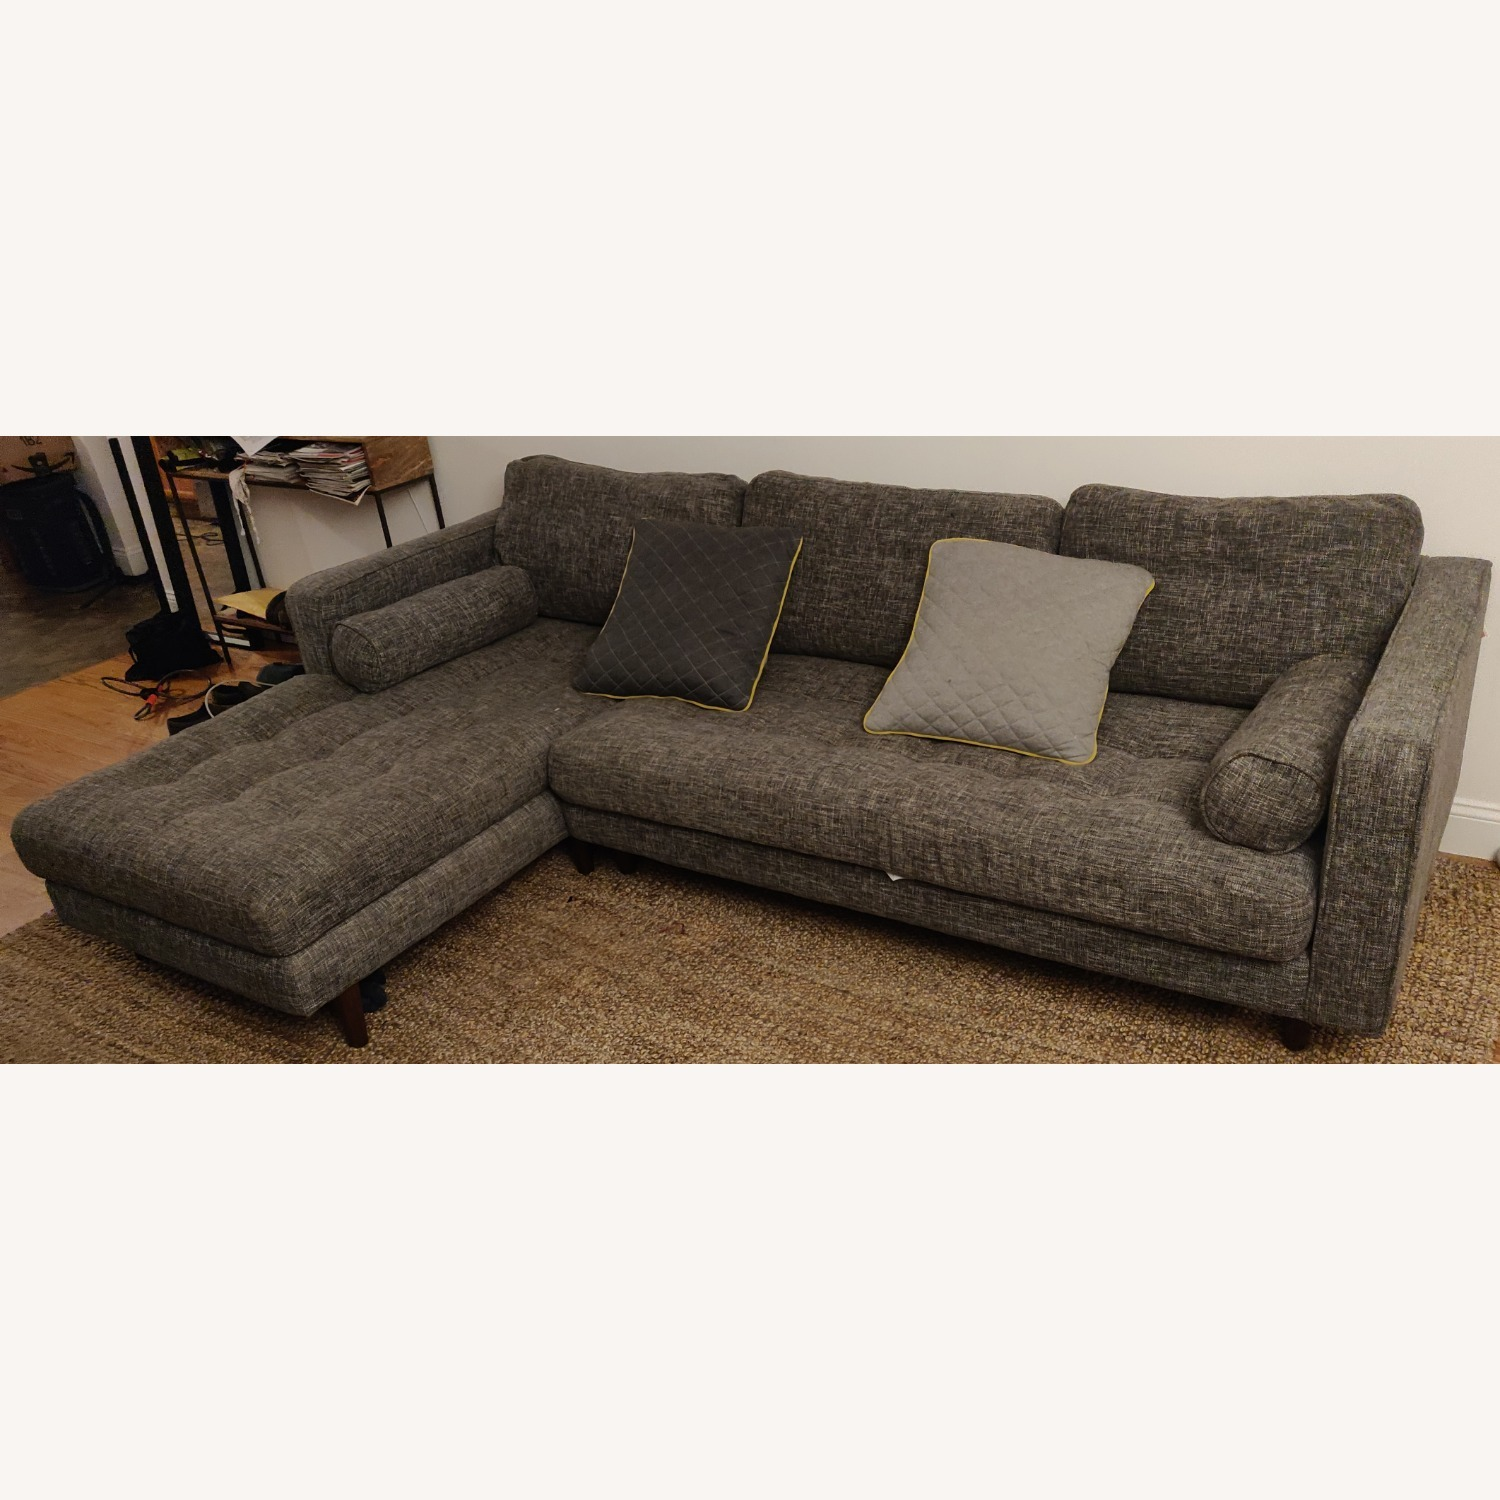 Article Sven Left Sectional Couch - image-1